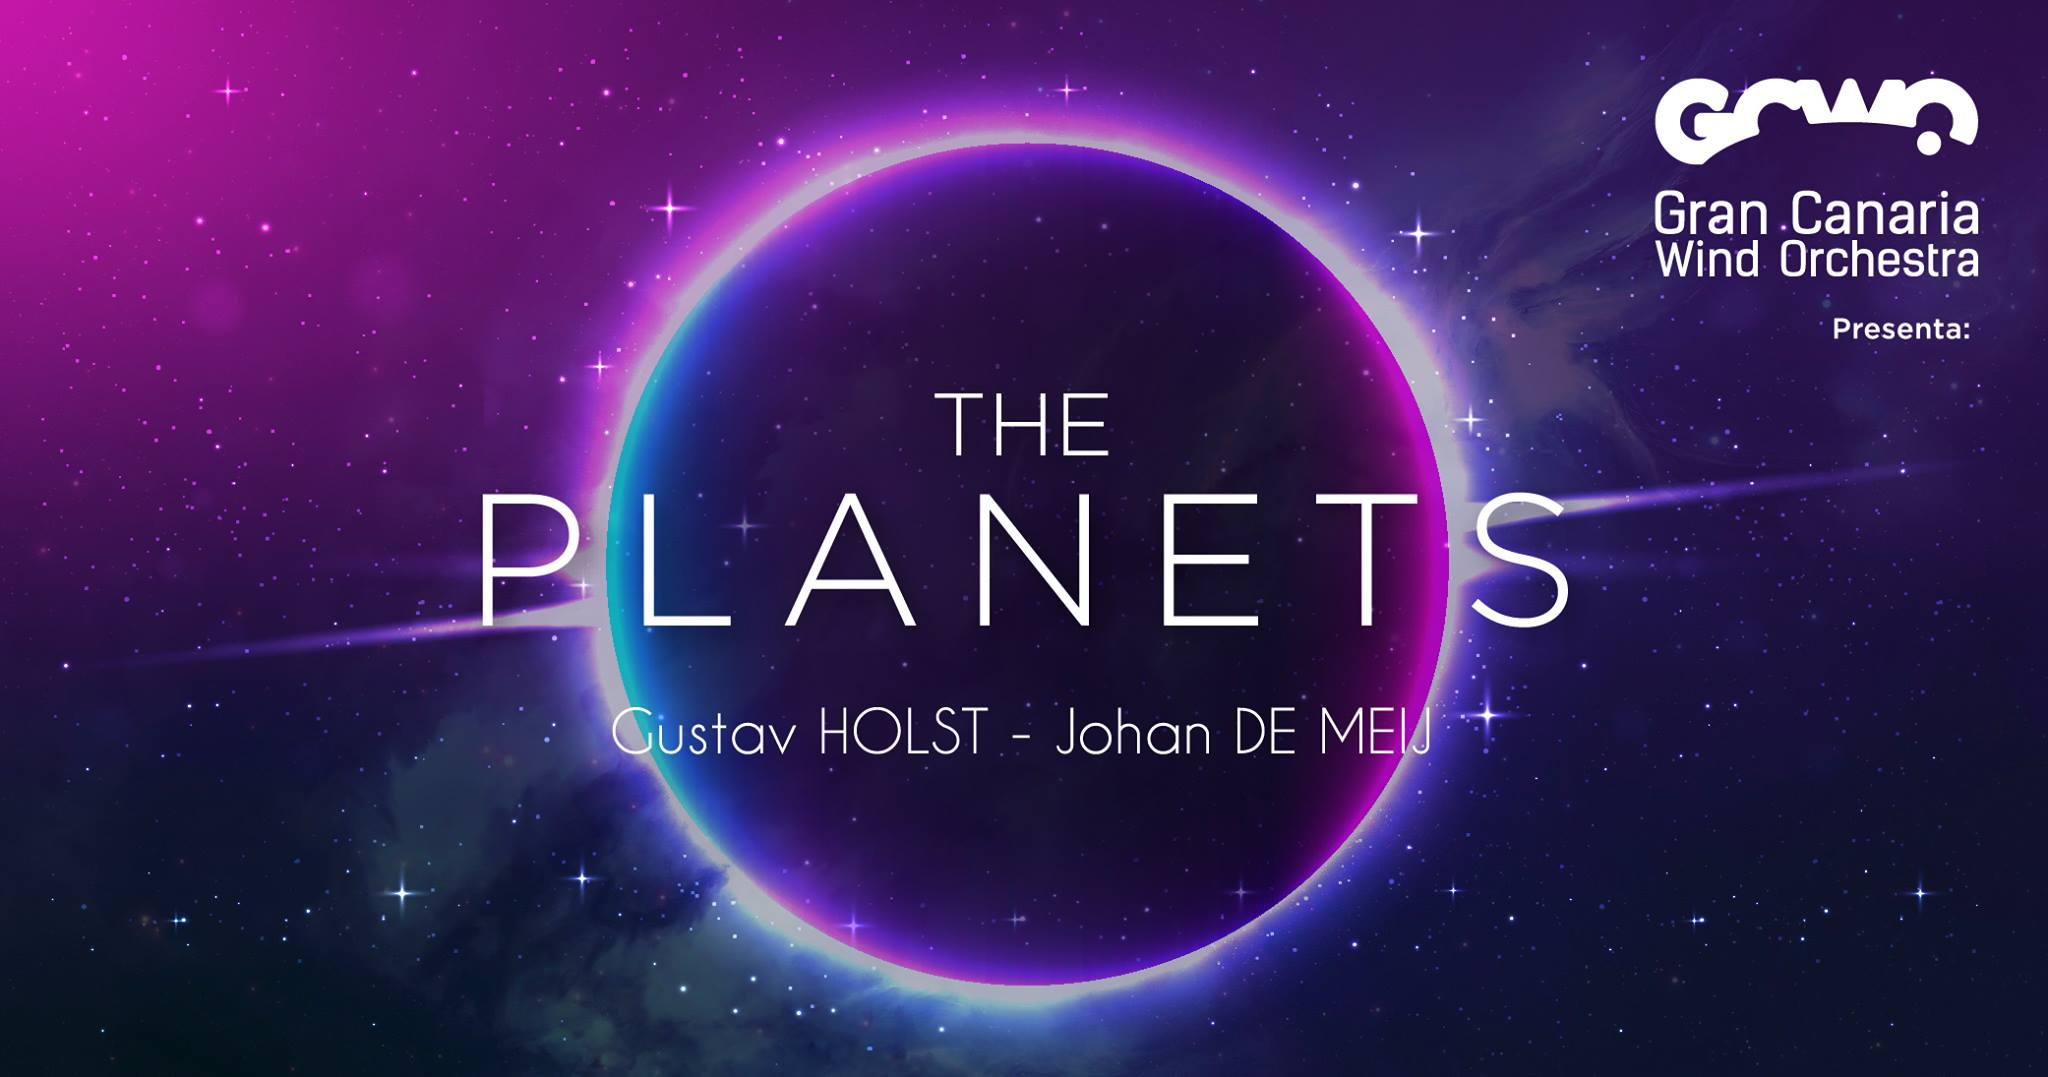 12 May 2019 – The Planets